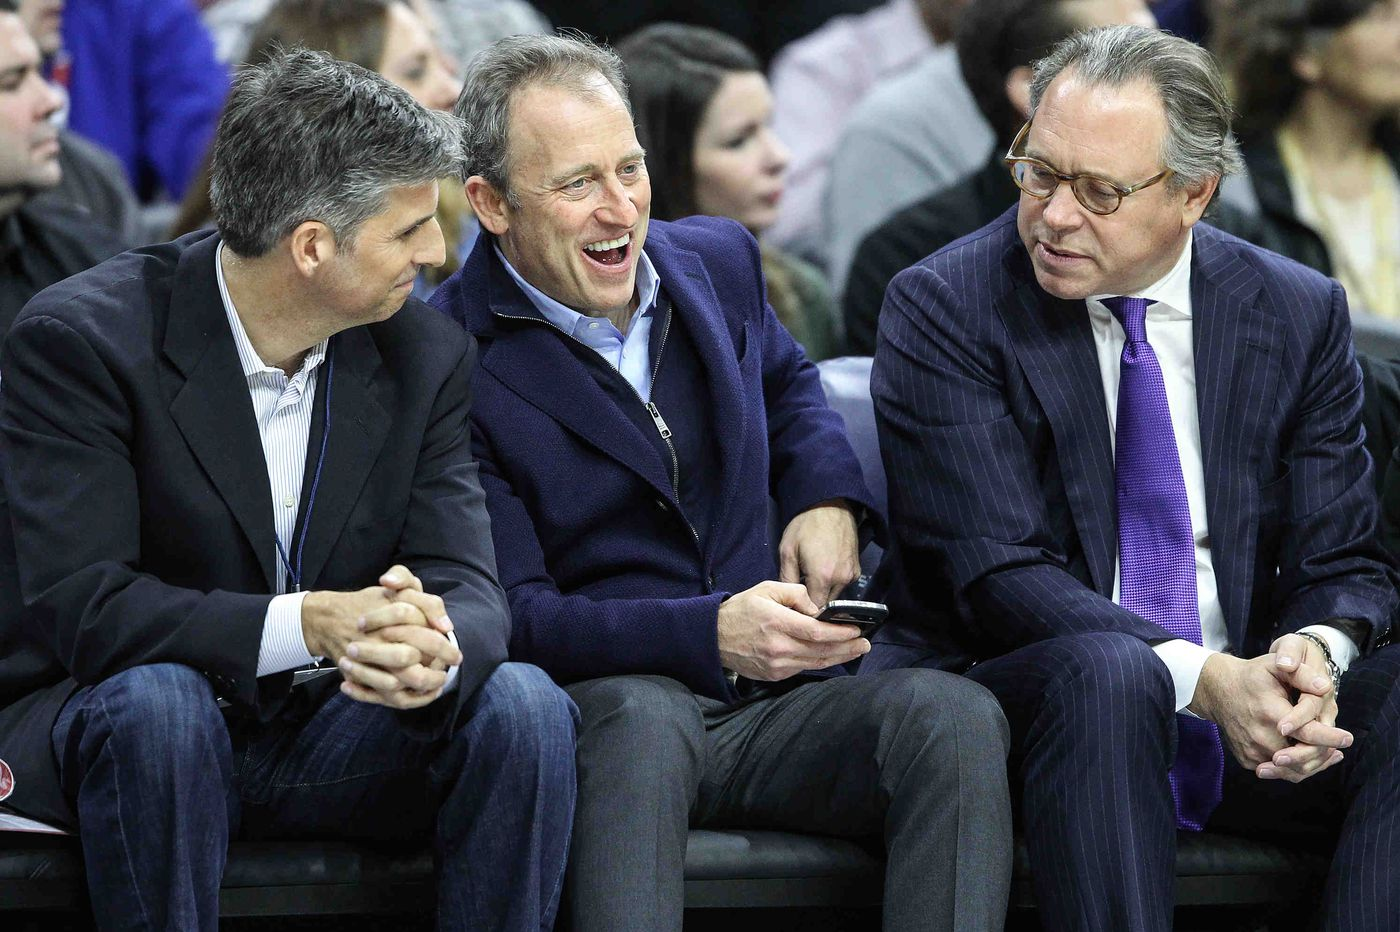 Why 76ers co-owner is pouring $10 million into Wharton School, and banking vet is giving $5M to Bryn Mawr